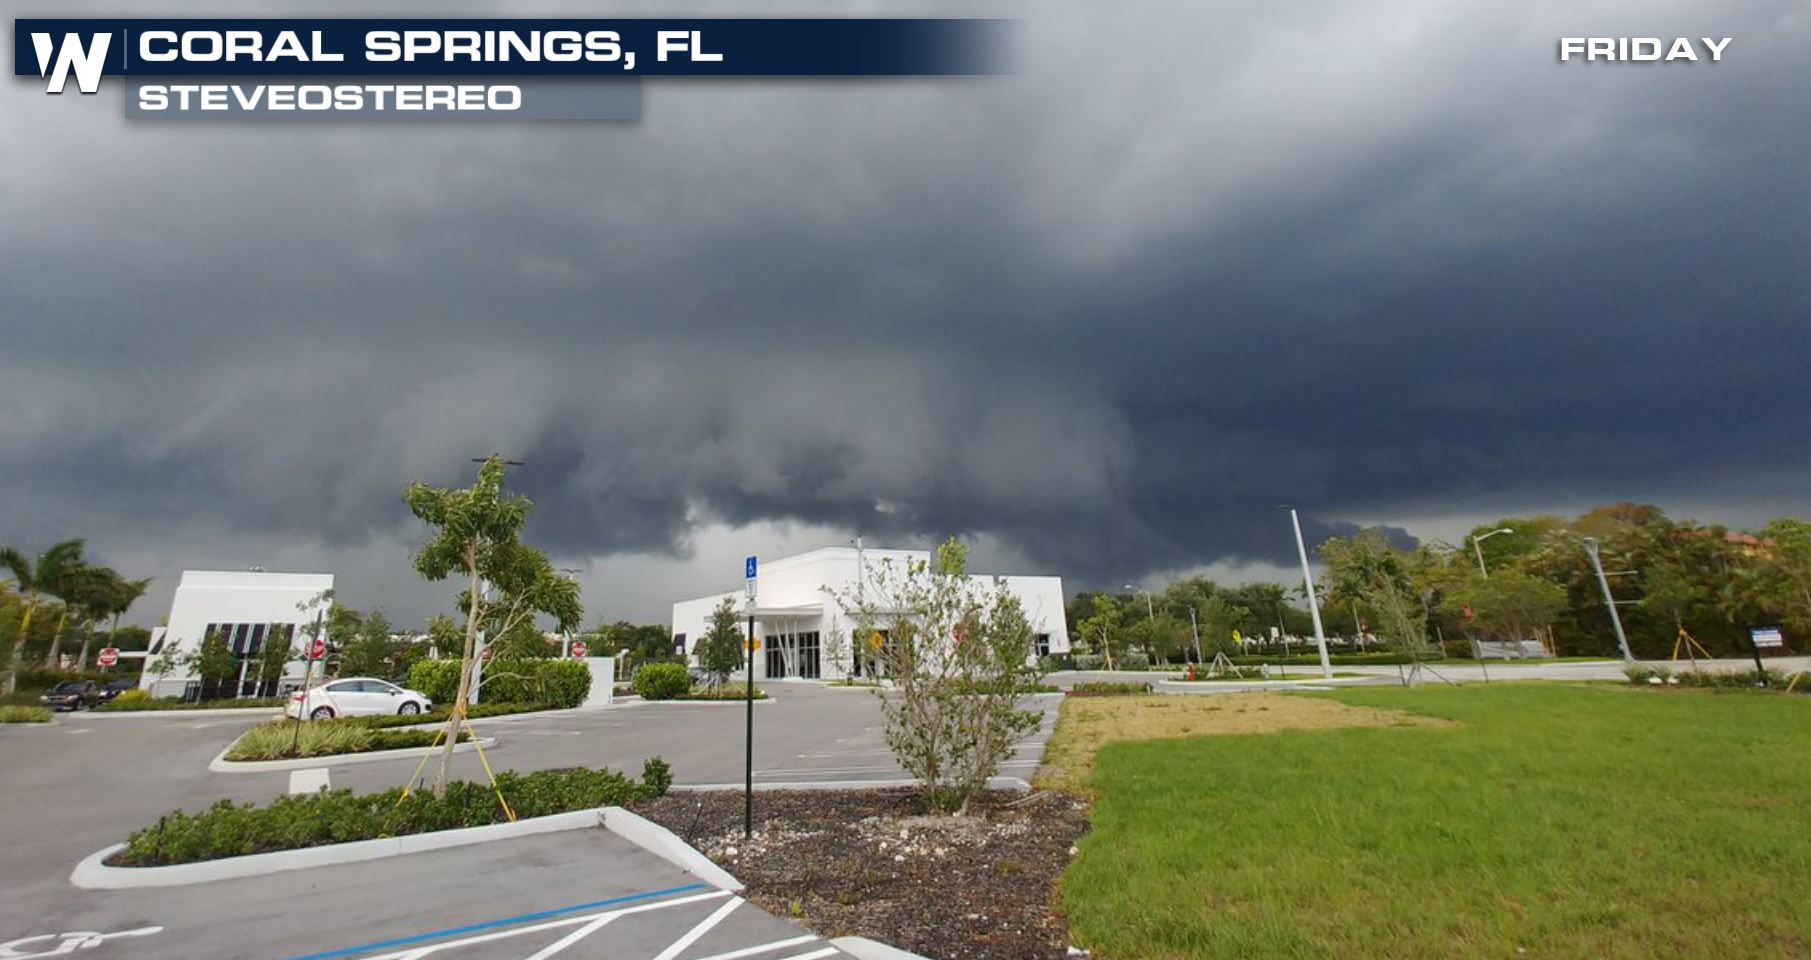 Confirmed Tornado in South Florida Friday Afternoon